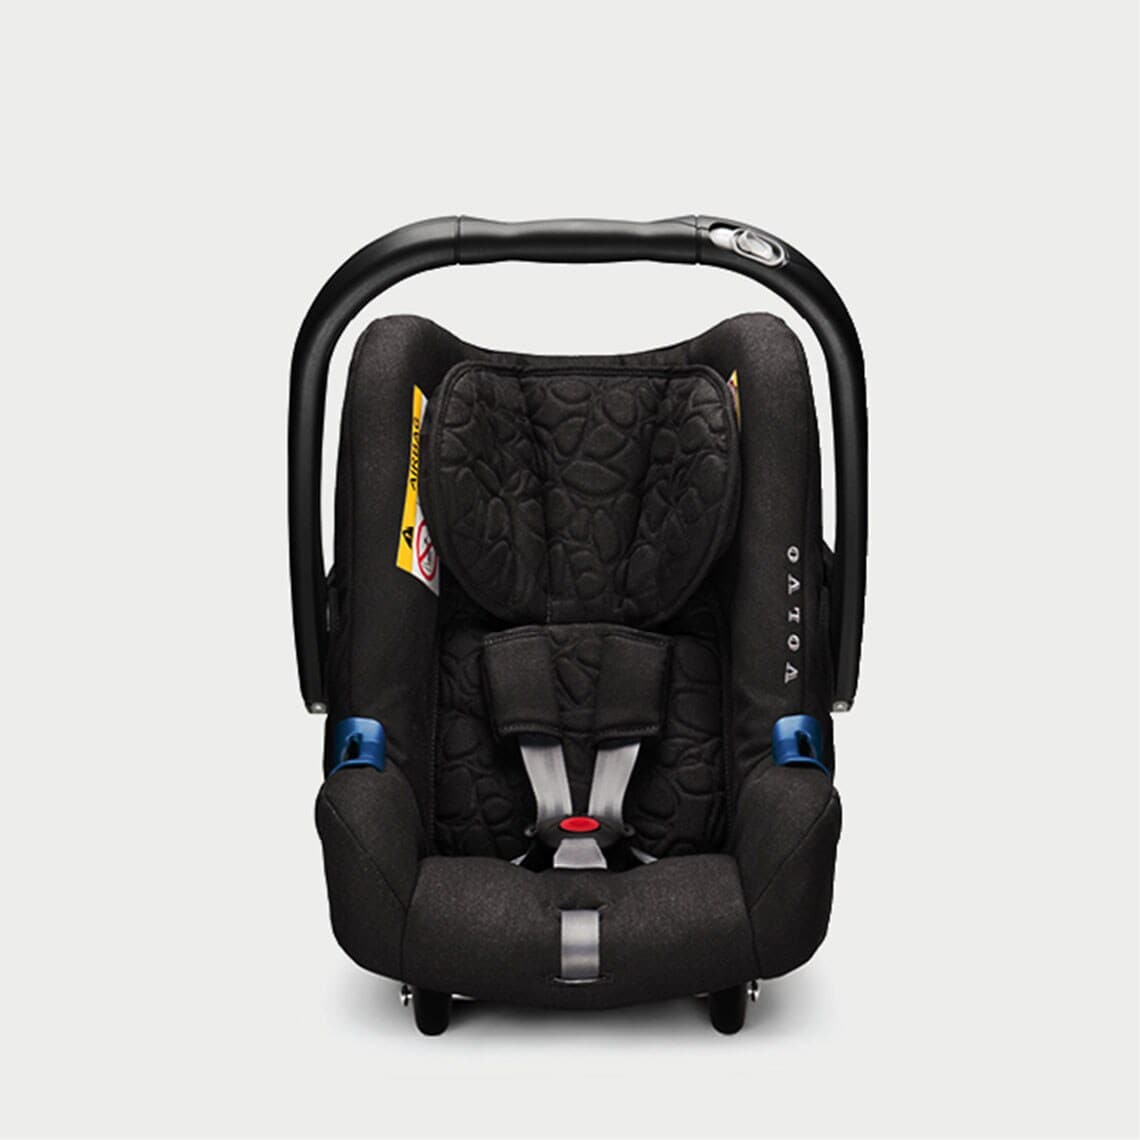 Child Seats | Volvo Cars